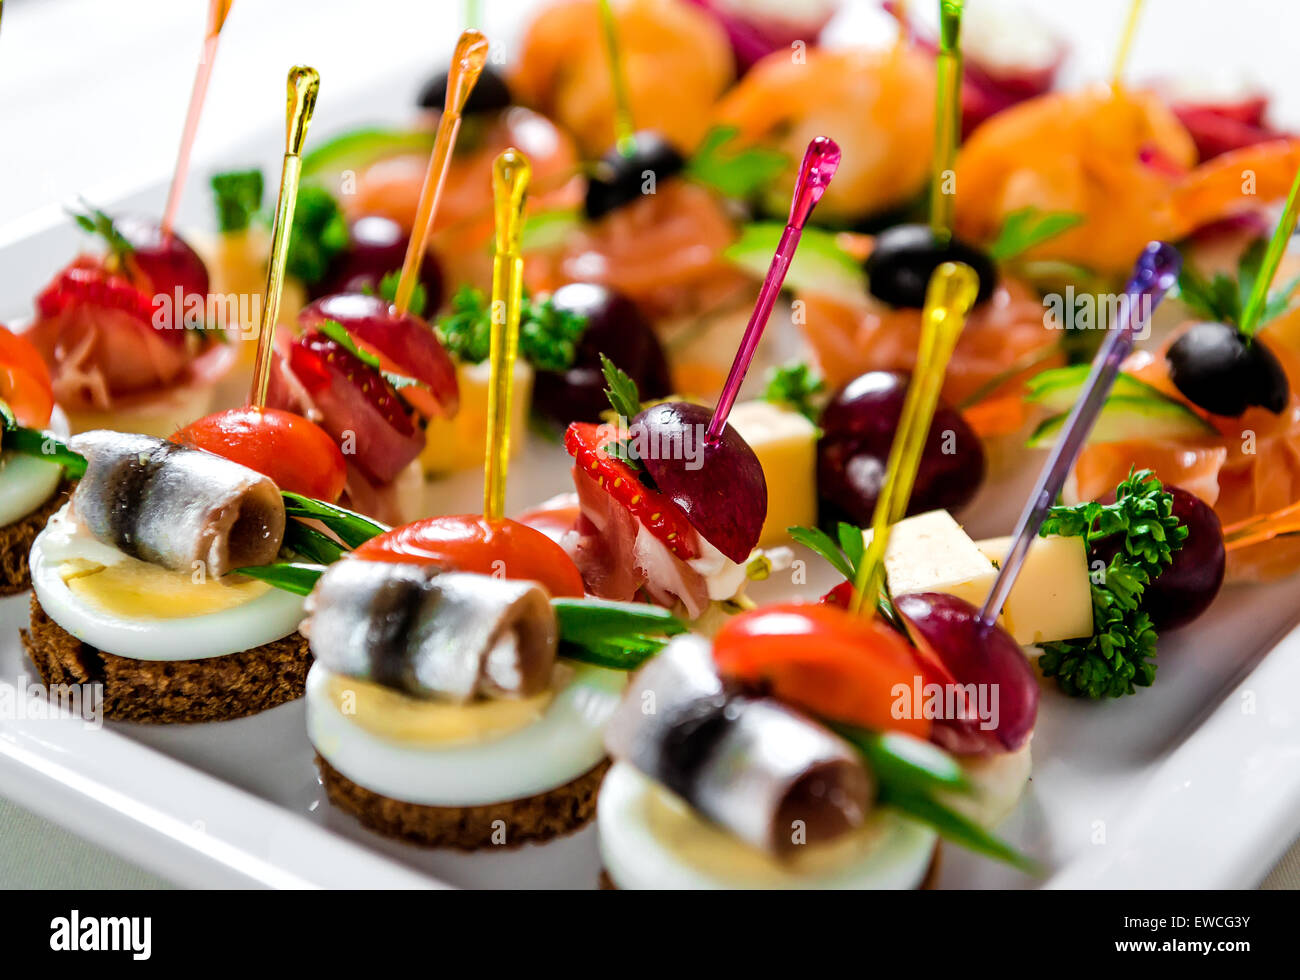 Seafood and meat canapes - Stock Image